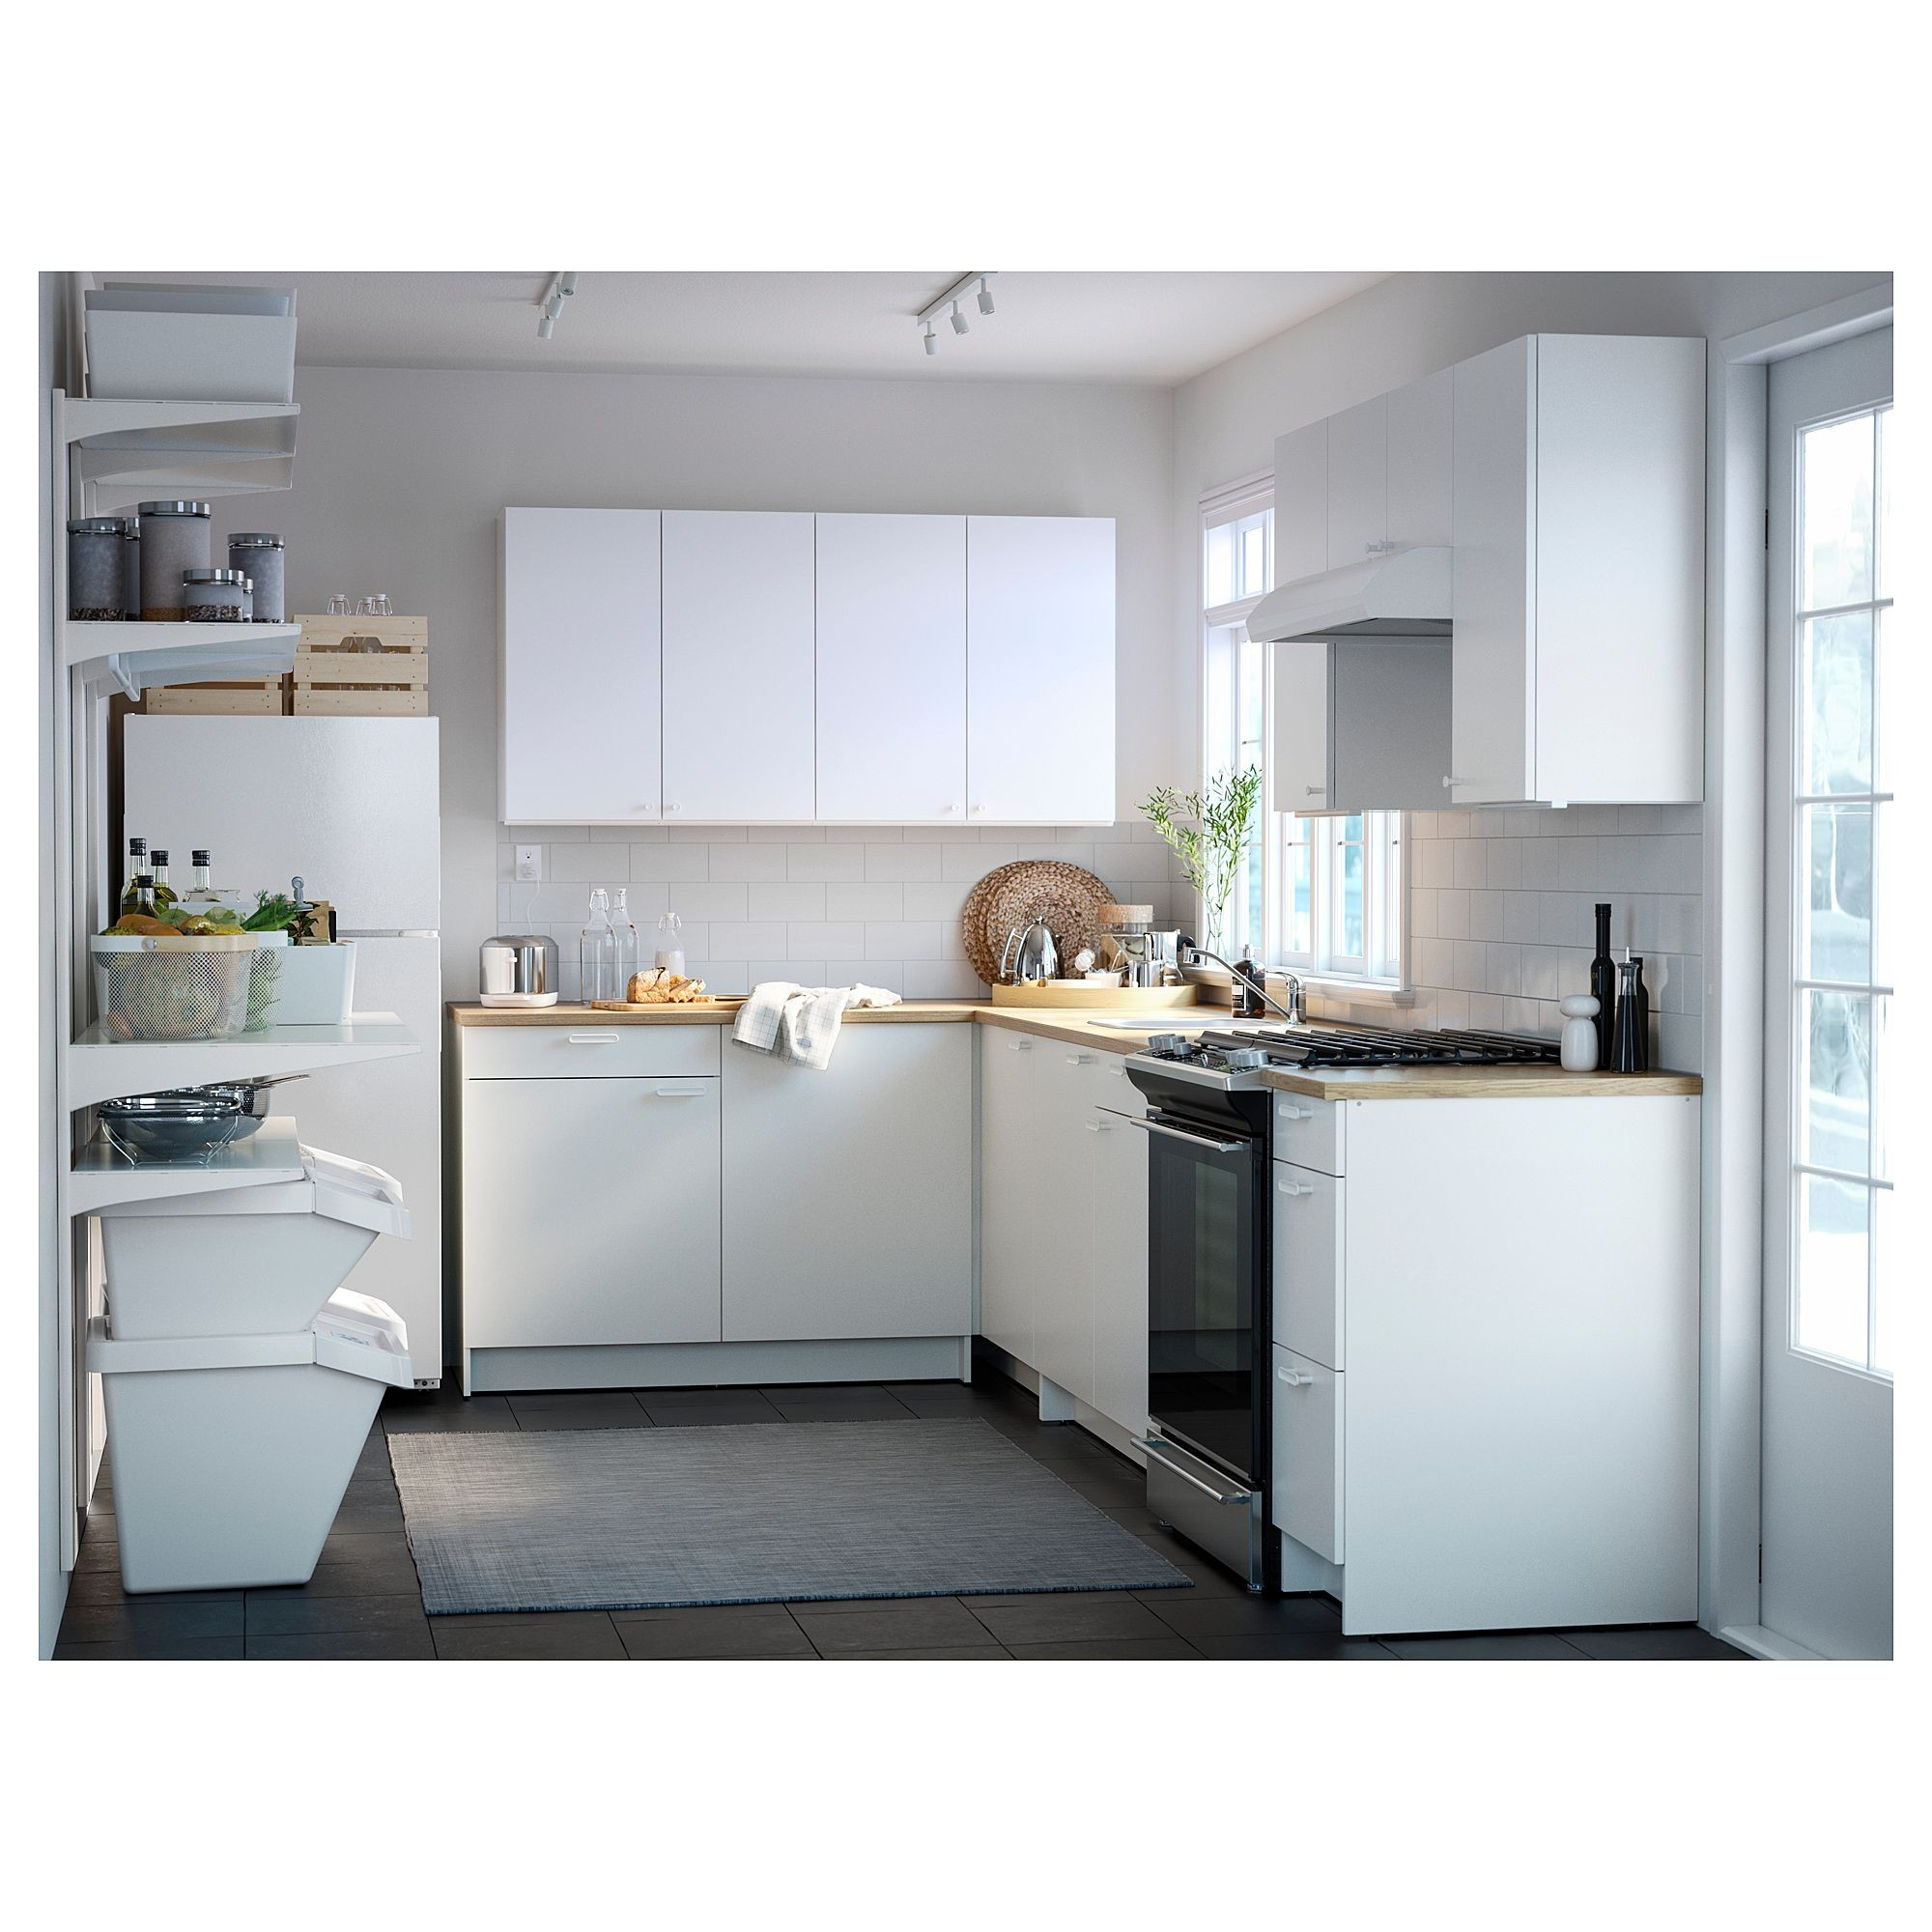 Desain Dapur Desa Paling Bagus Untuk Knoxhult Base Cabinet with Doors and Drawer White Of Desain Dapur Desa Paling Modern Untuk Kitchen Design Japanese Minimalist Inside A Tiny House Small